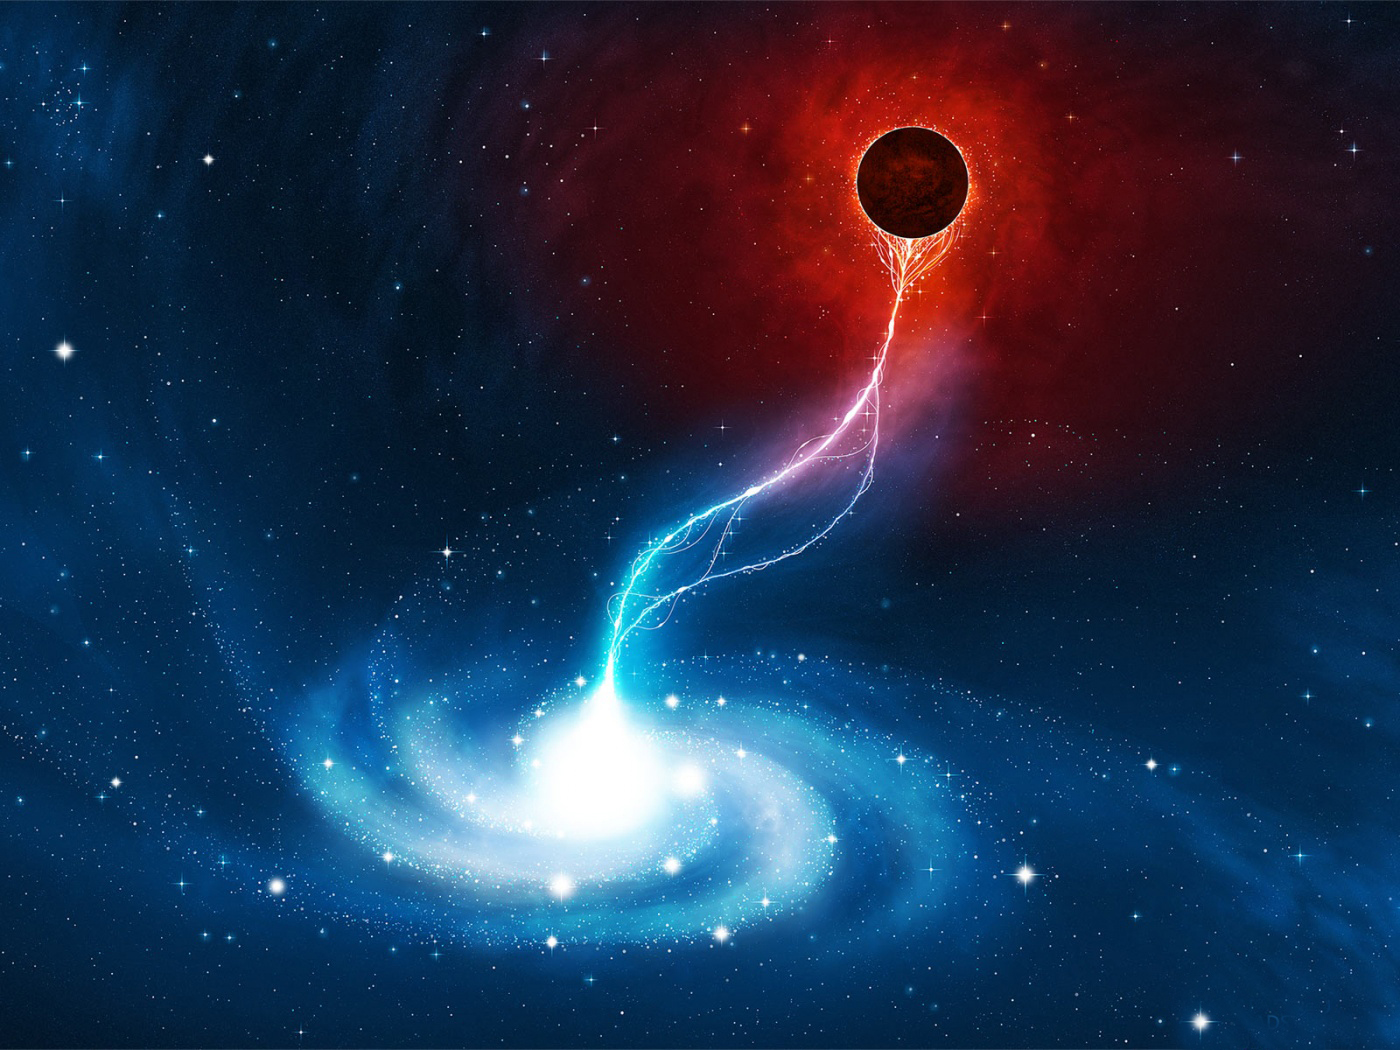 D-Black-Hole-wallpaper-wp400887-1